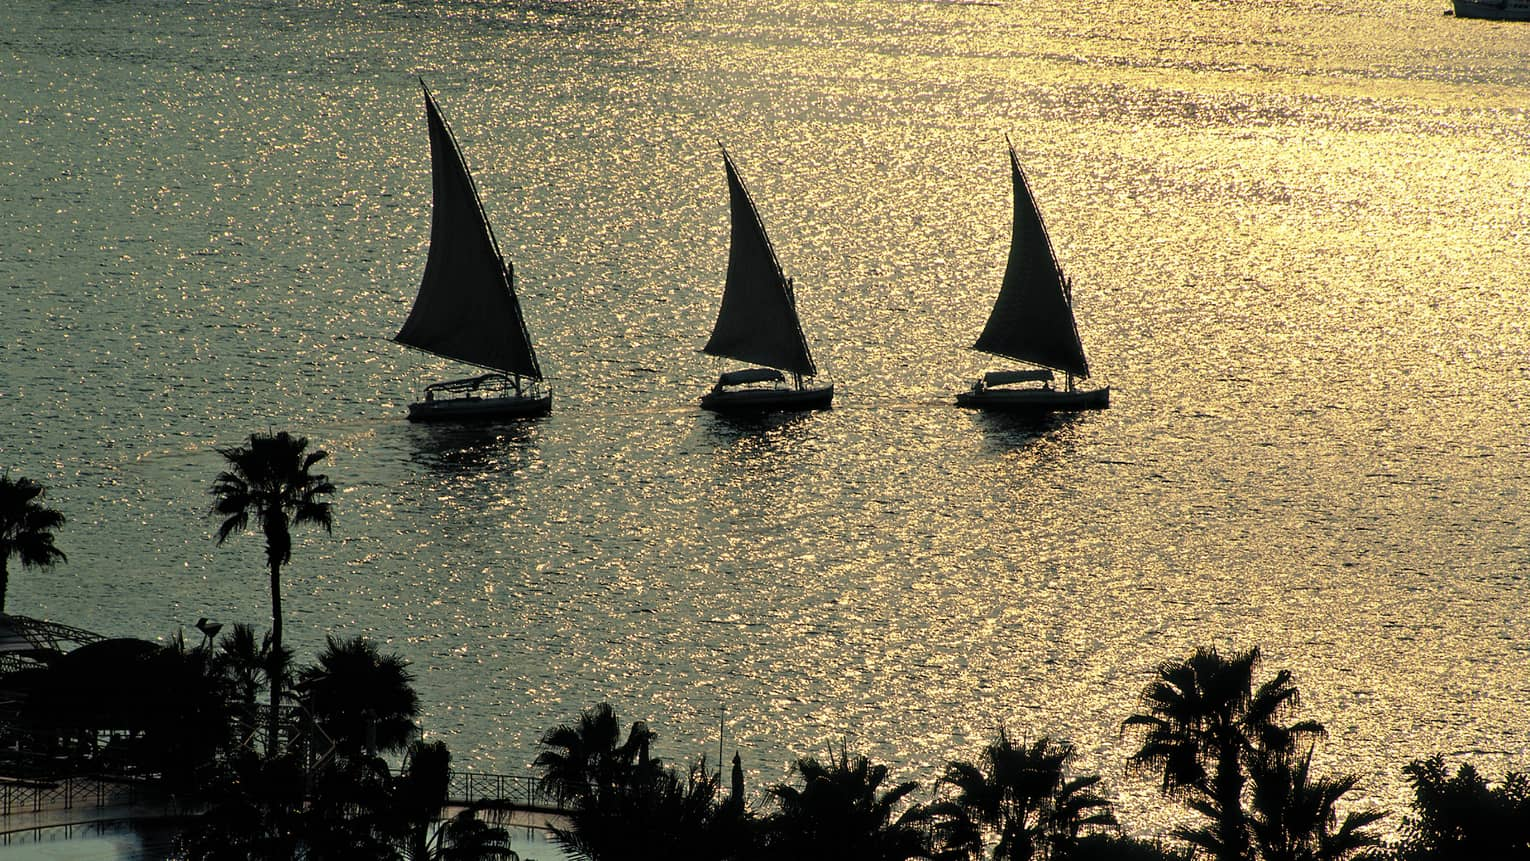 Silhouettes of three traditional felucca wooden sailboats on the Nile river at sunset